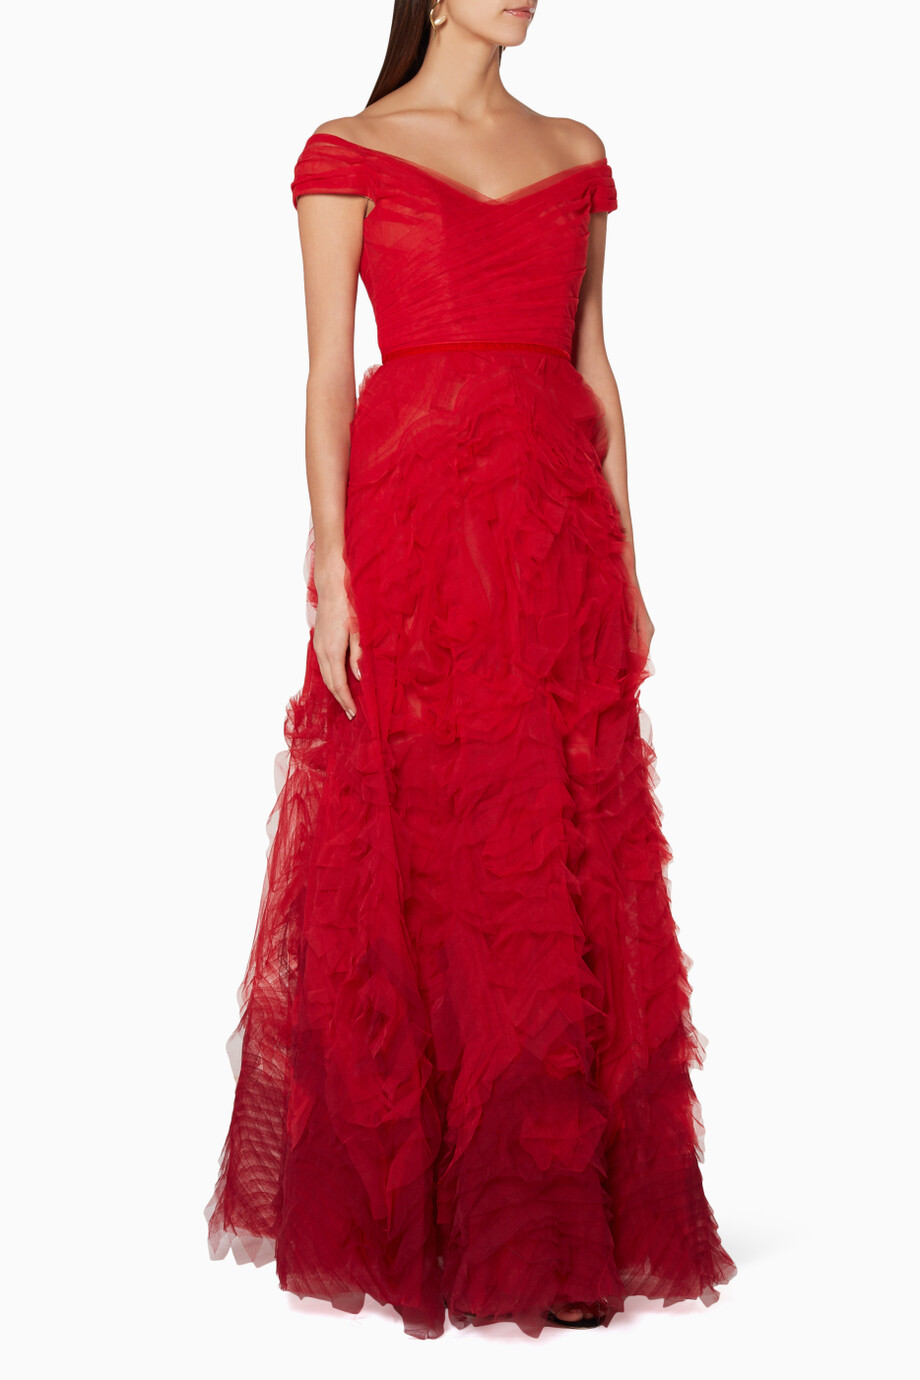 16f69df5 Shop Marchesa Notte Red Red Off-The-Shoulder Ombré Gown for Women ...